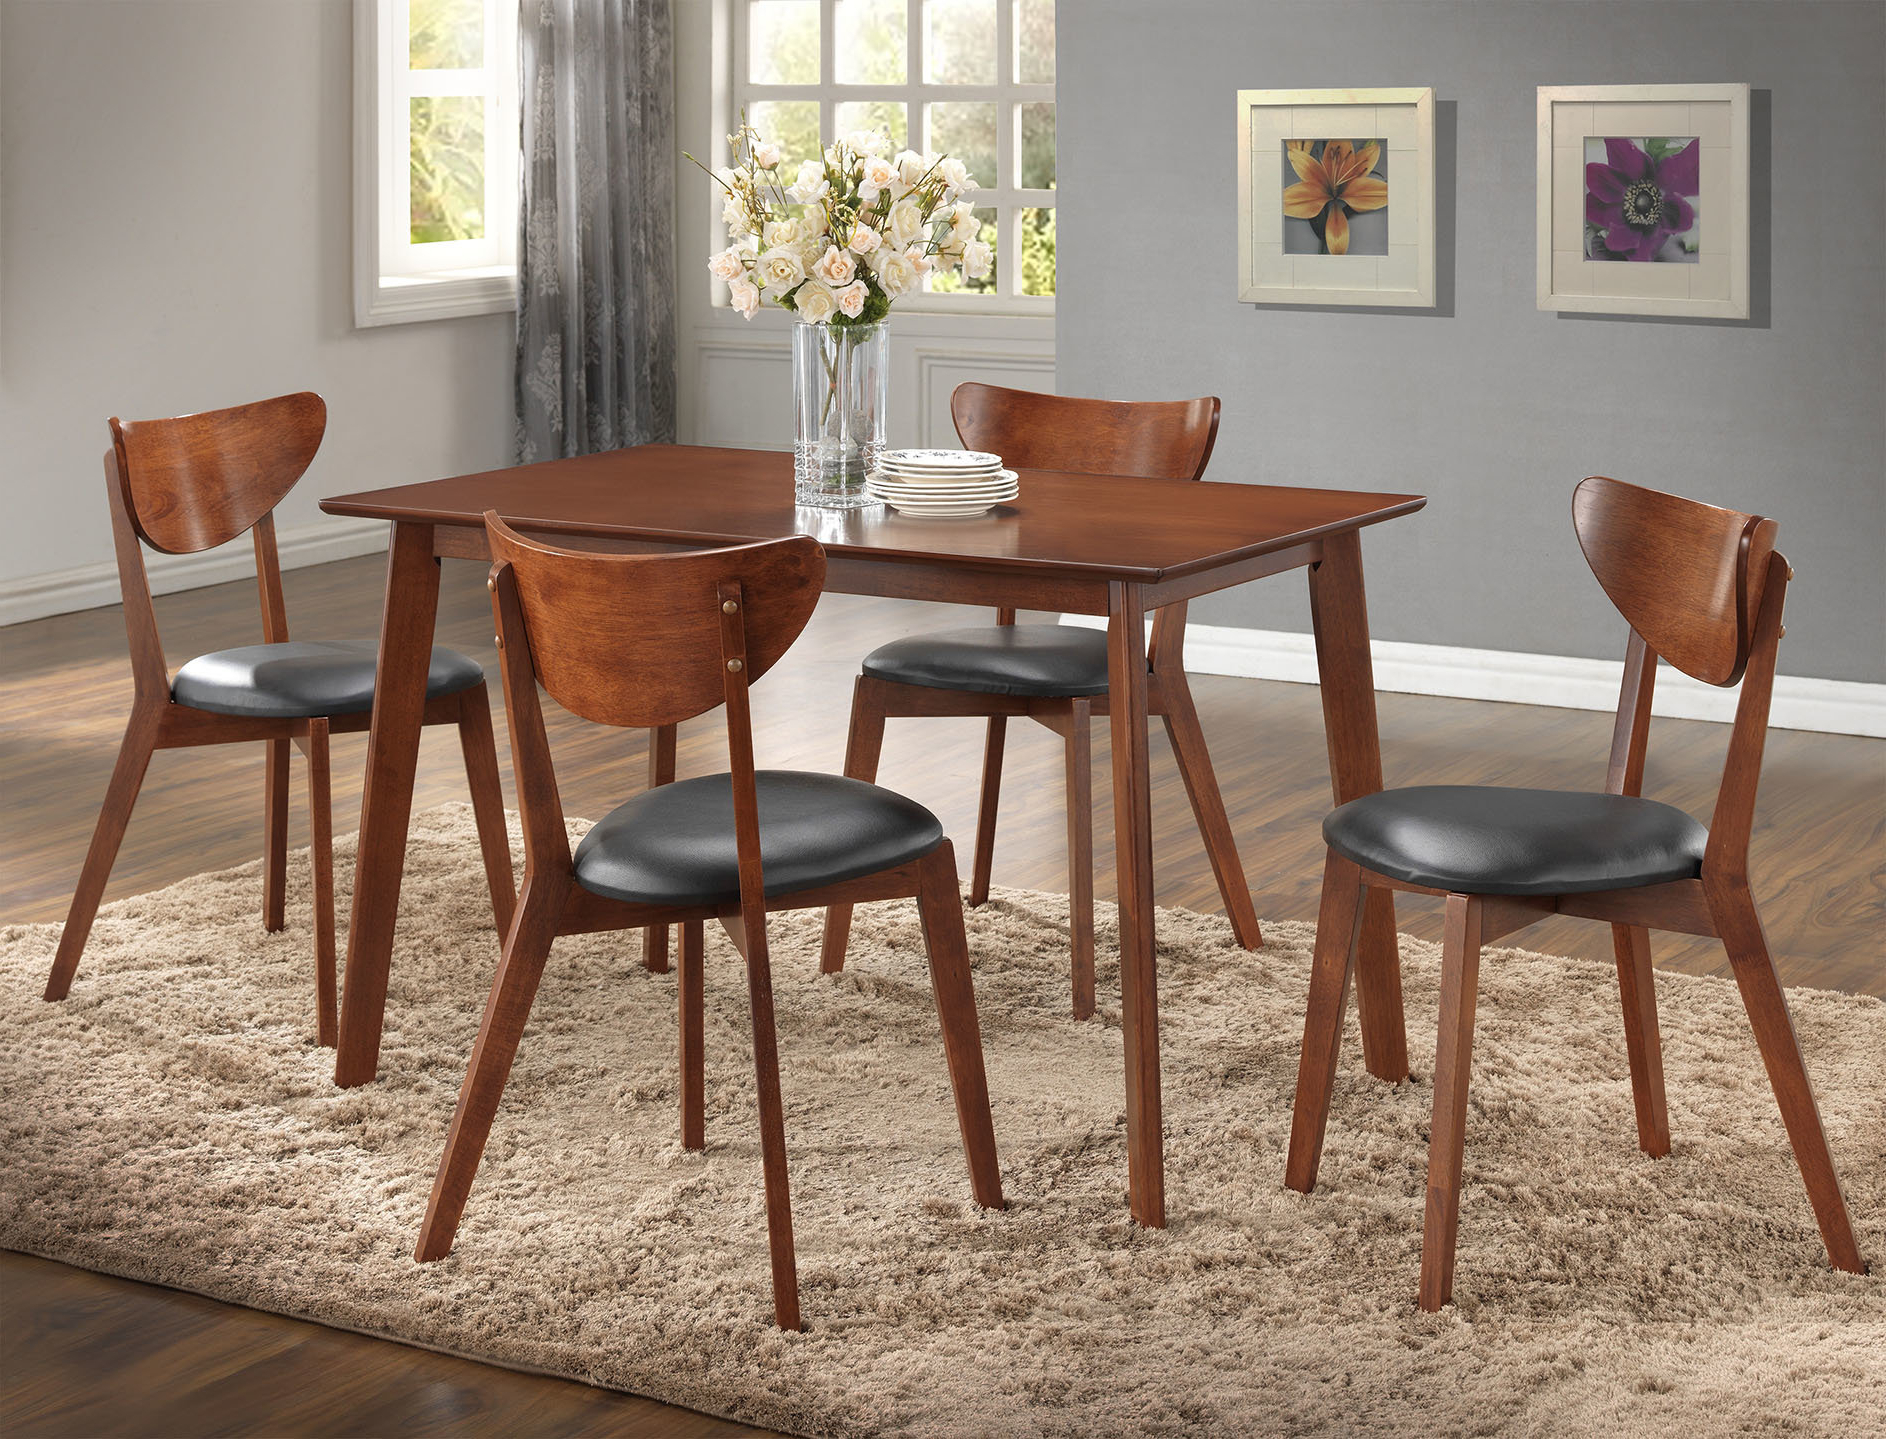 Tejeda 5 Piece Dining Sets For Fashionable Urijah 5 Piece Dining Set (View 13 of 20)